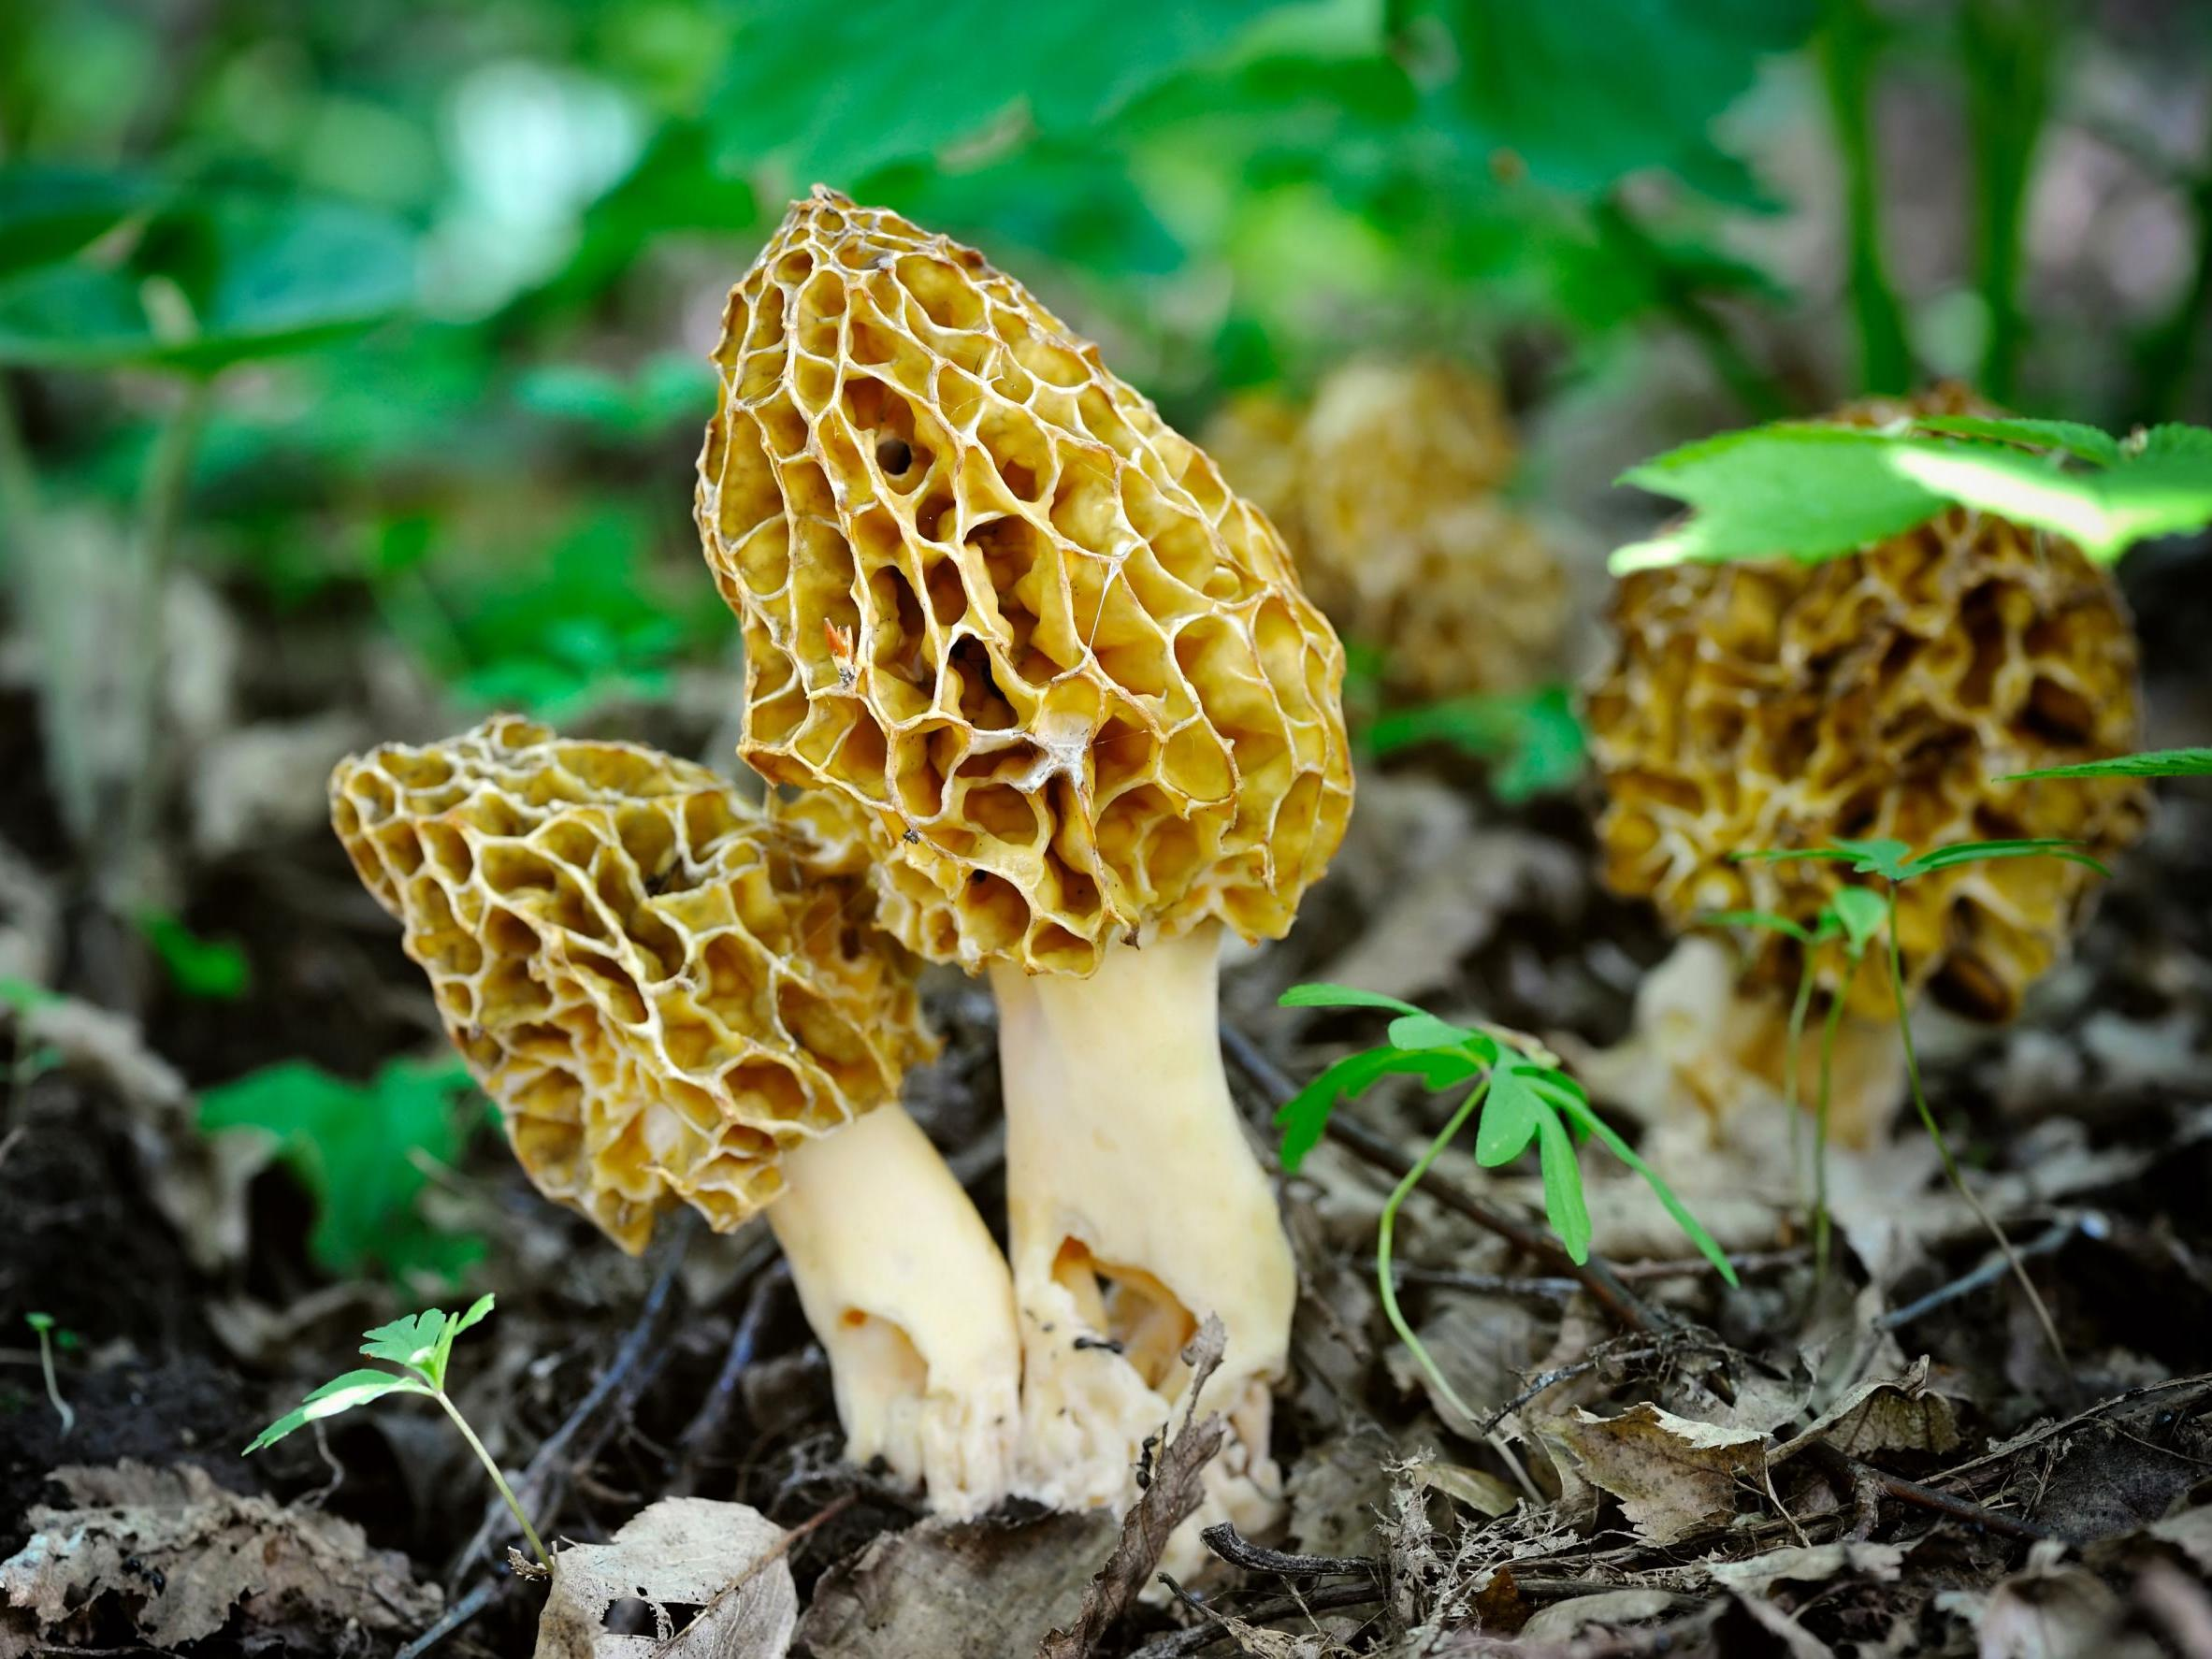 Mushrooms - latest news, breaking stories and comment - The Independent